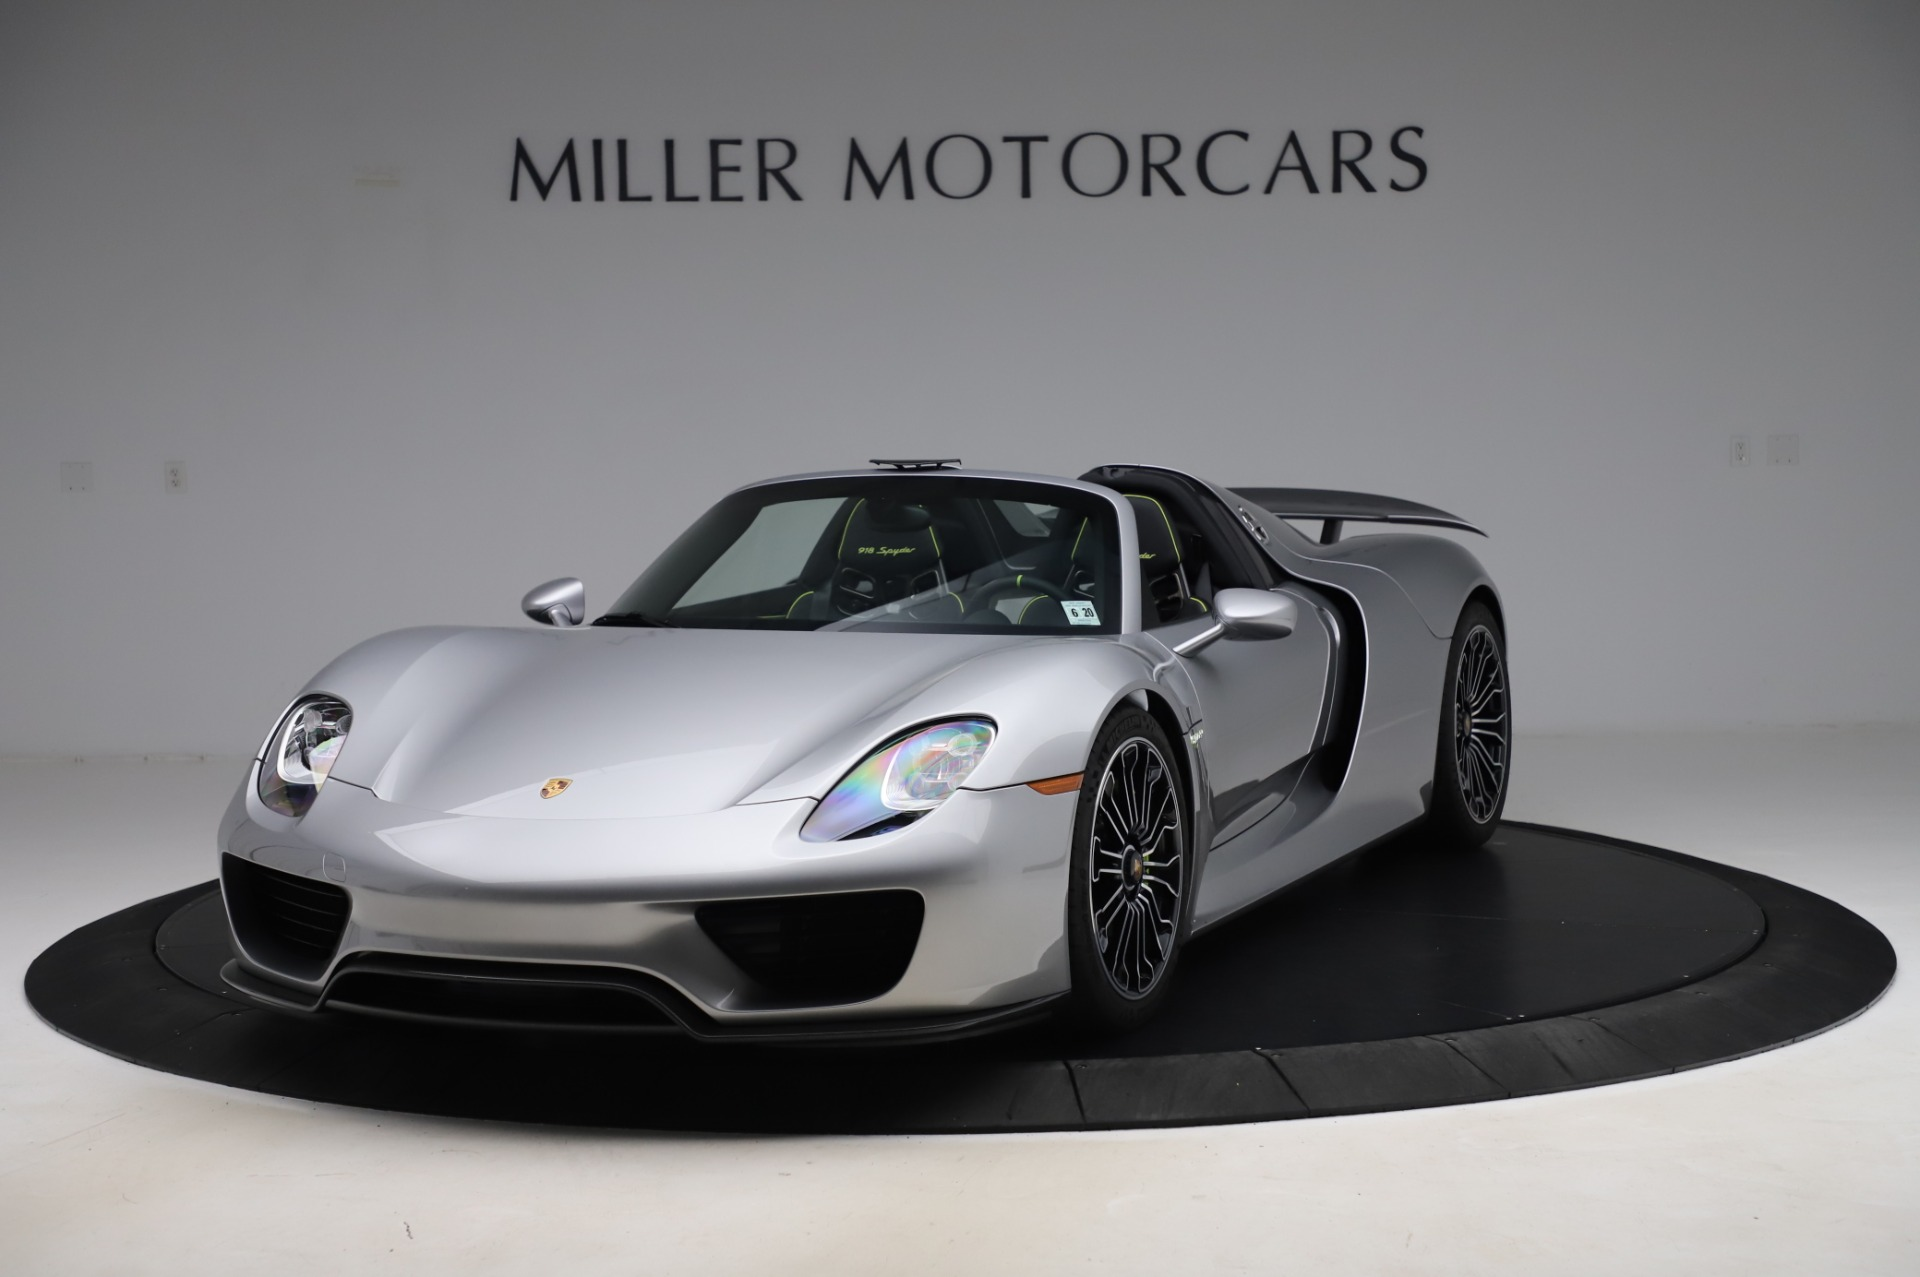 Used 2015 Porsche 918 Spyder for sale Sold at Alfa Romeo of Westport in Westport CT 06880 1